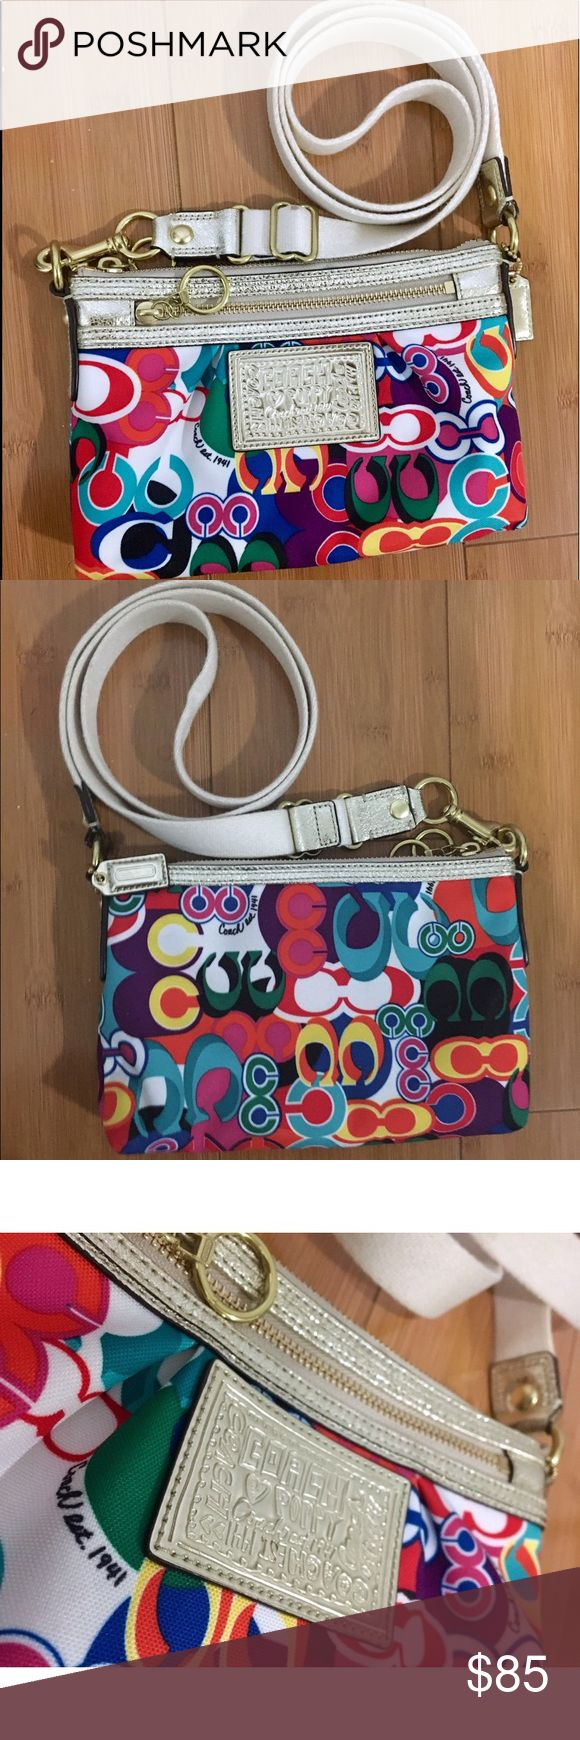 Multicolor Coach Poppy Crossbody Bag Great condition, no visible damage. Great style, no longer sold by designer. Coach Bags Crossbody Bags